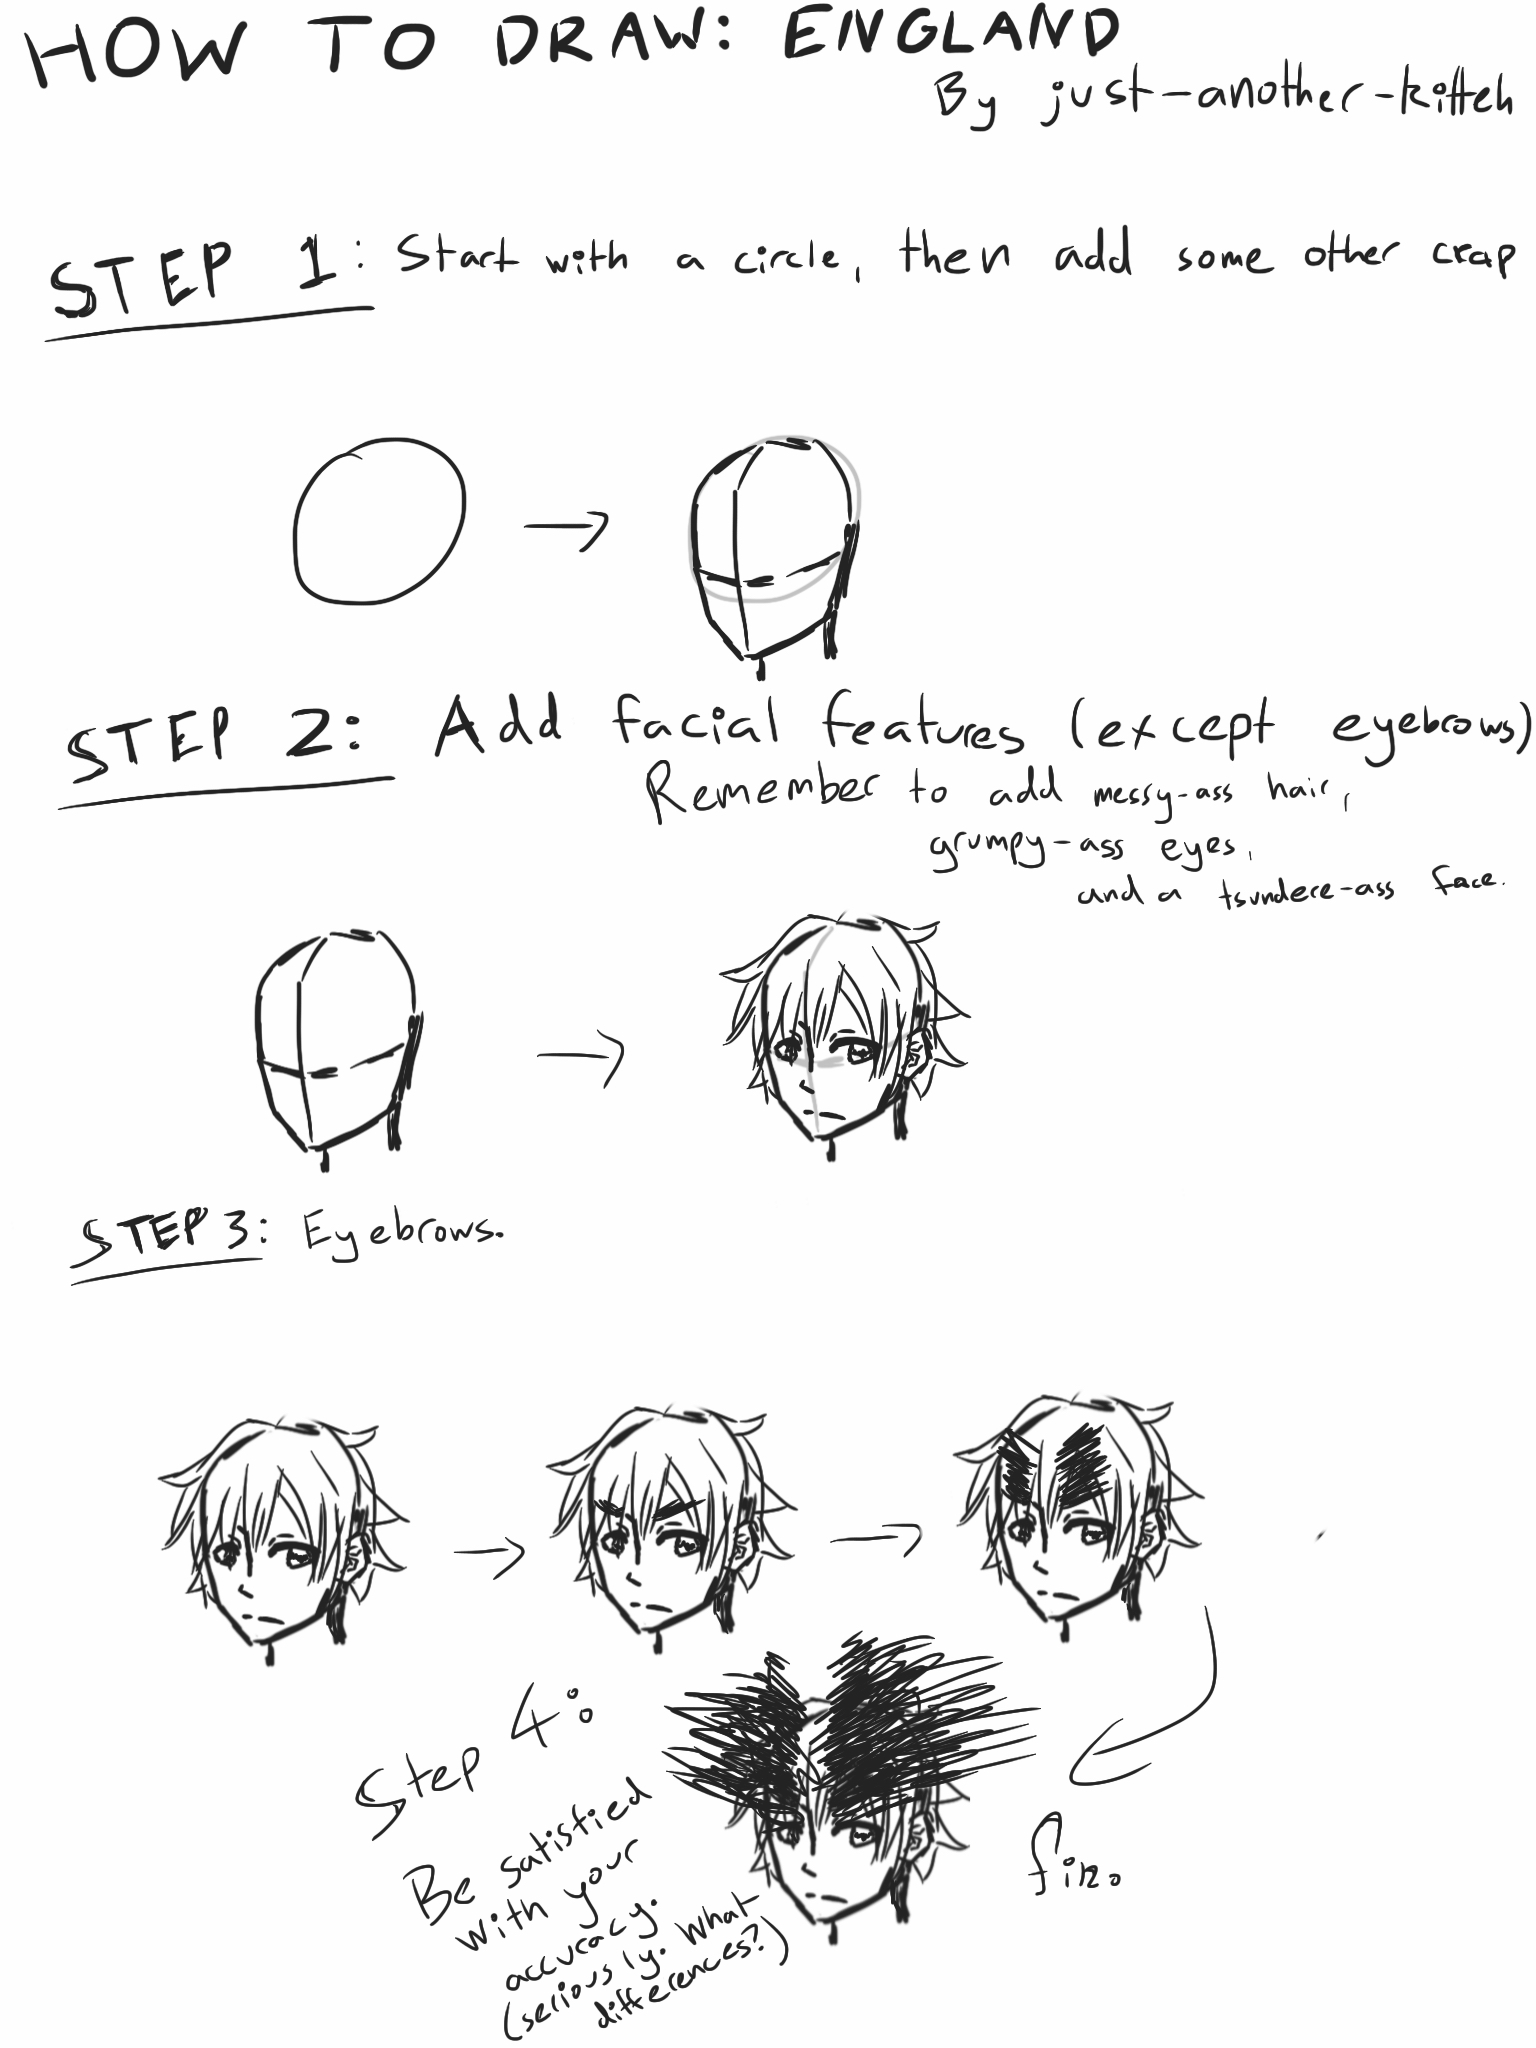 Hetalia: How to draw England (accurately) by Just-another ...